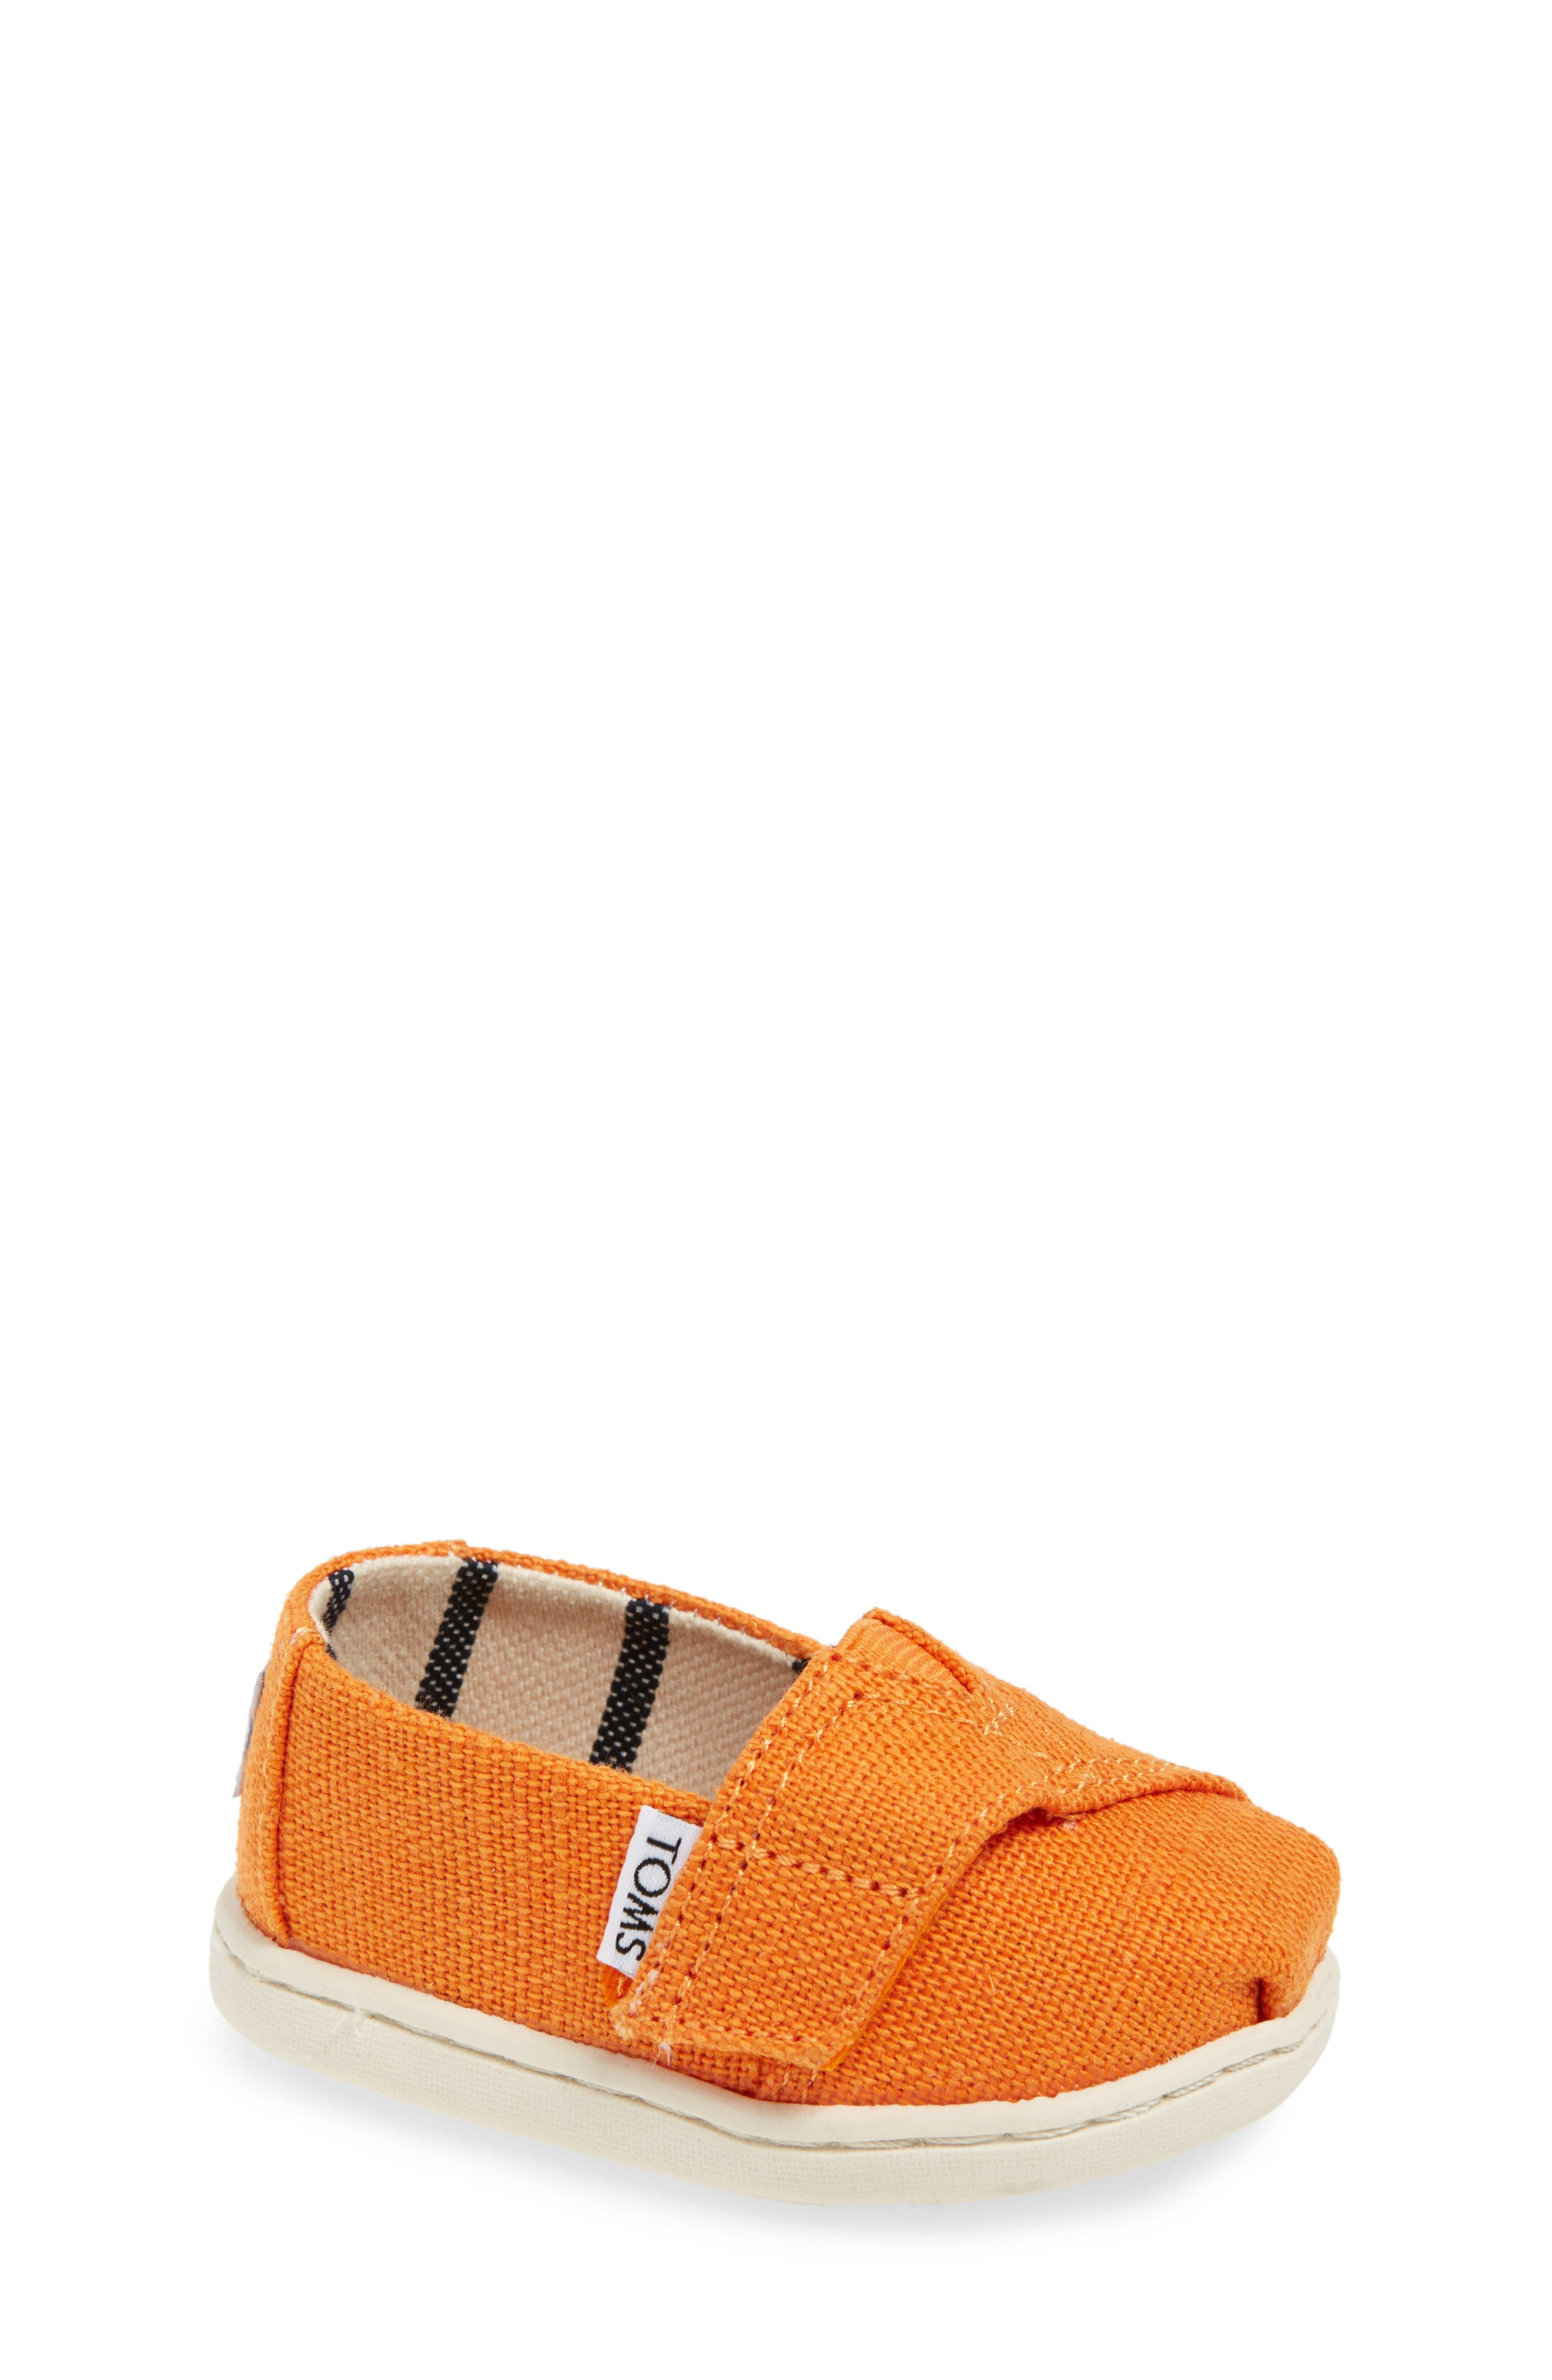 Chambray Slip-On,                             Main thumbnail 1, color,                             Russet Orange Heritage Canvas